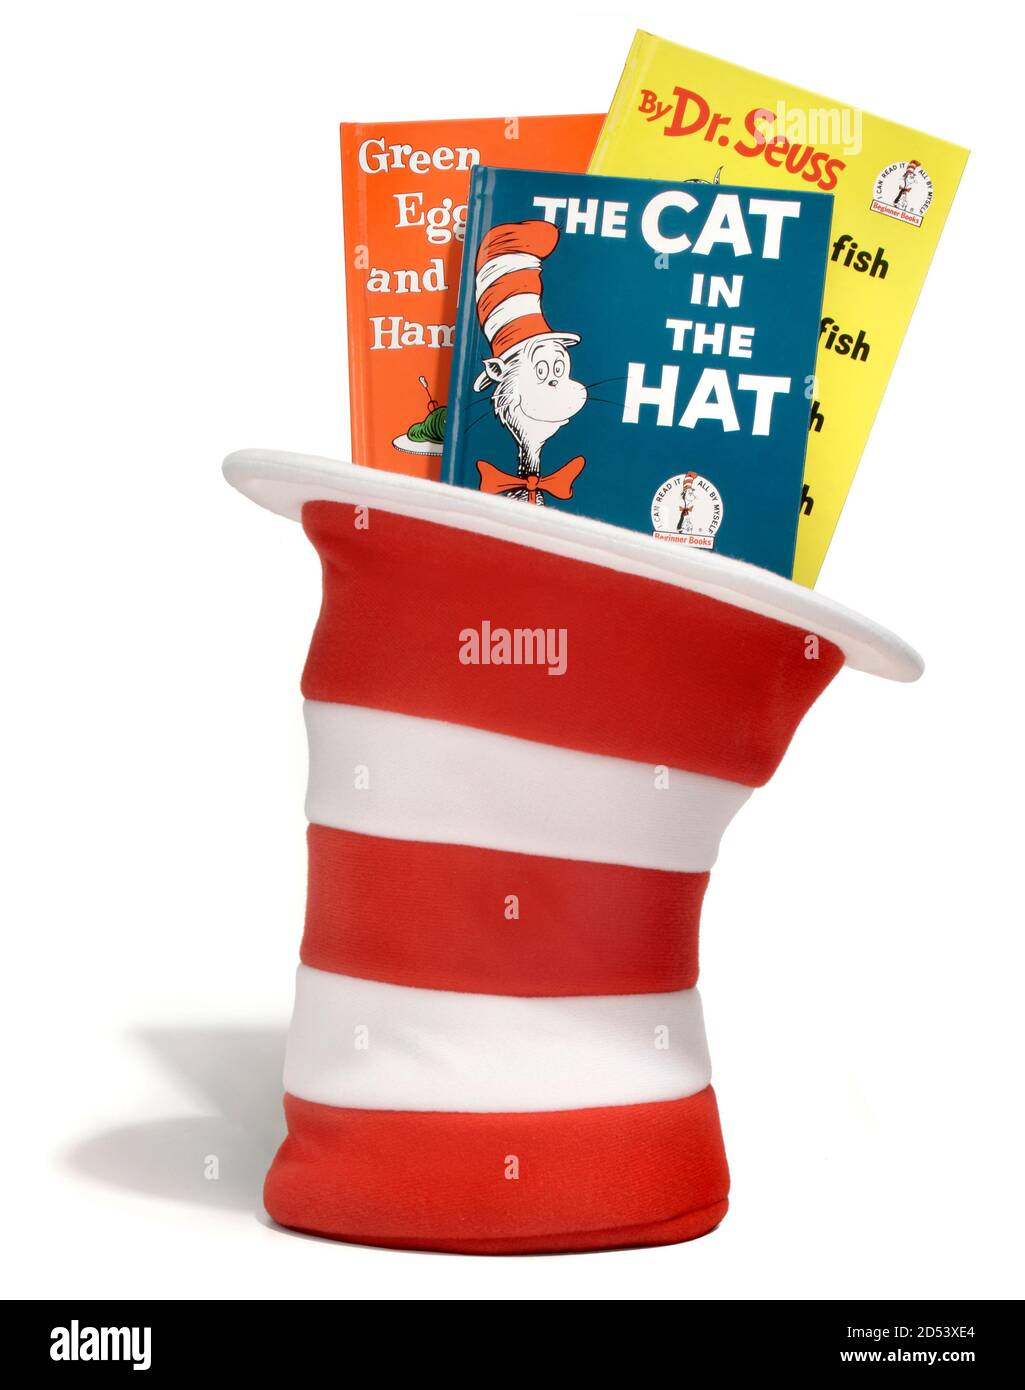 Dr. Seuss books in a red and white striped hat photographed on a white background Stock Photo